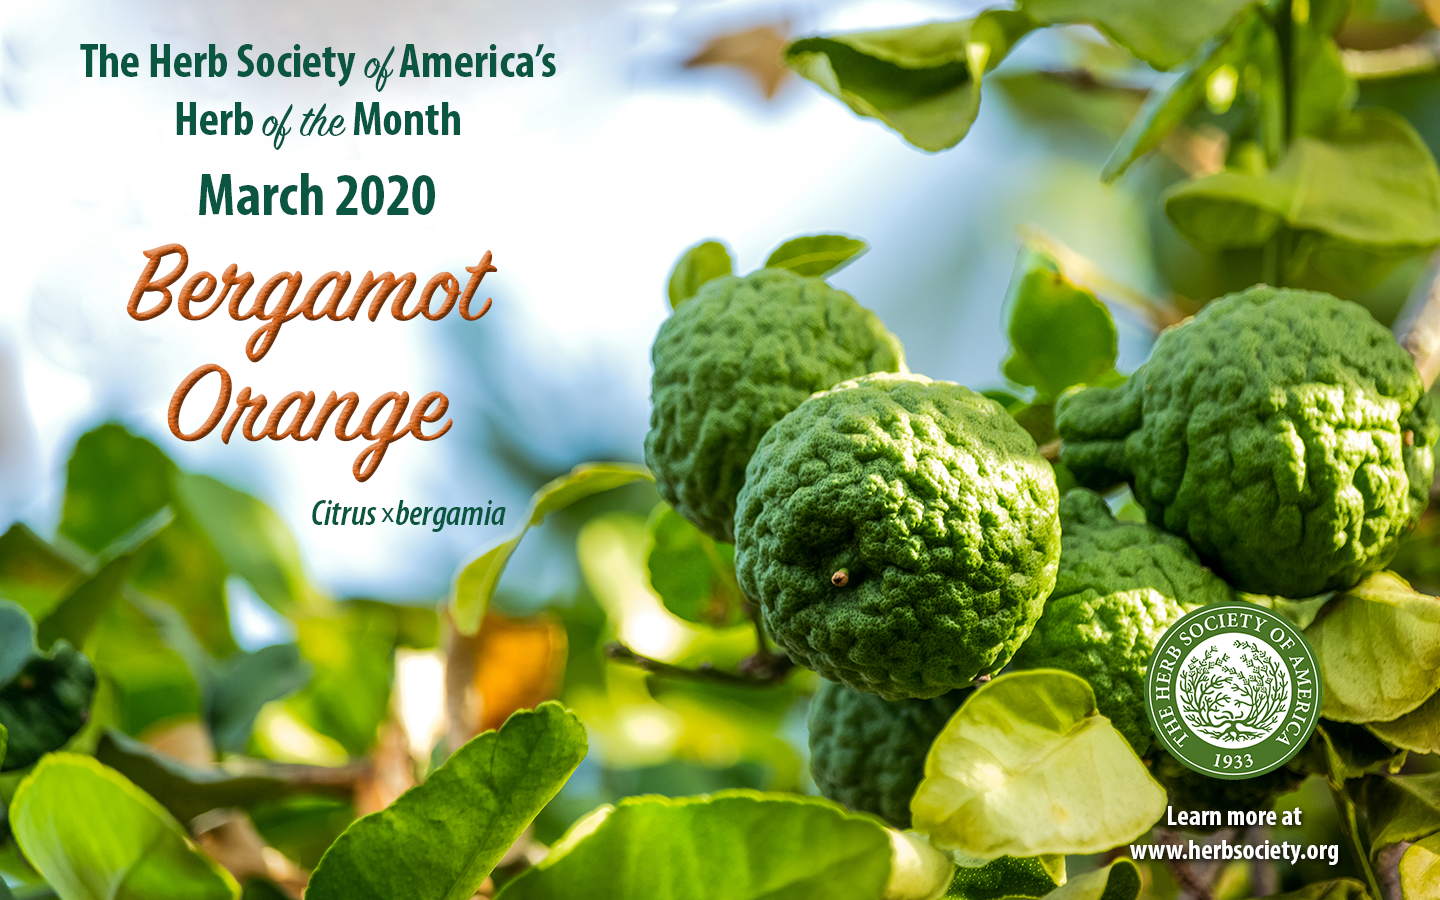 March2020 HOM Bergamot Orange